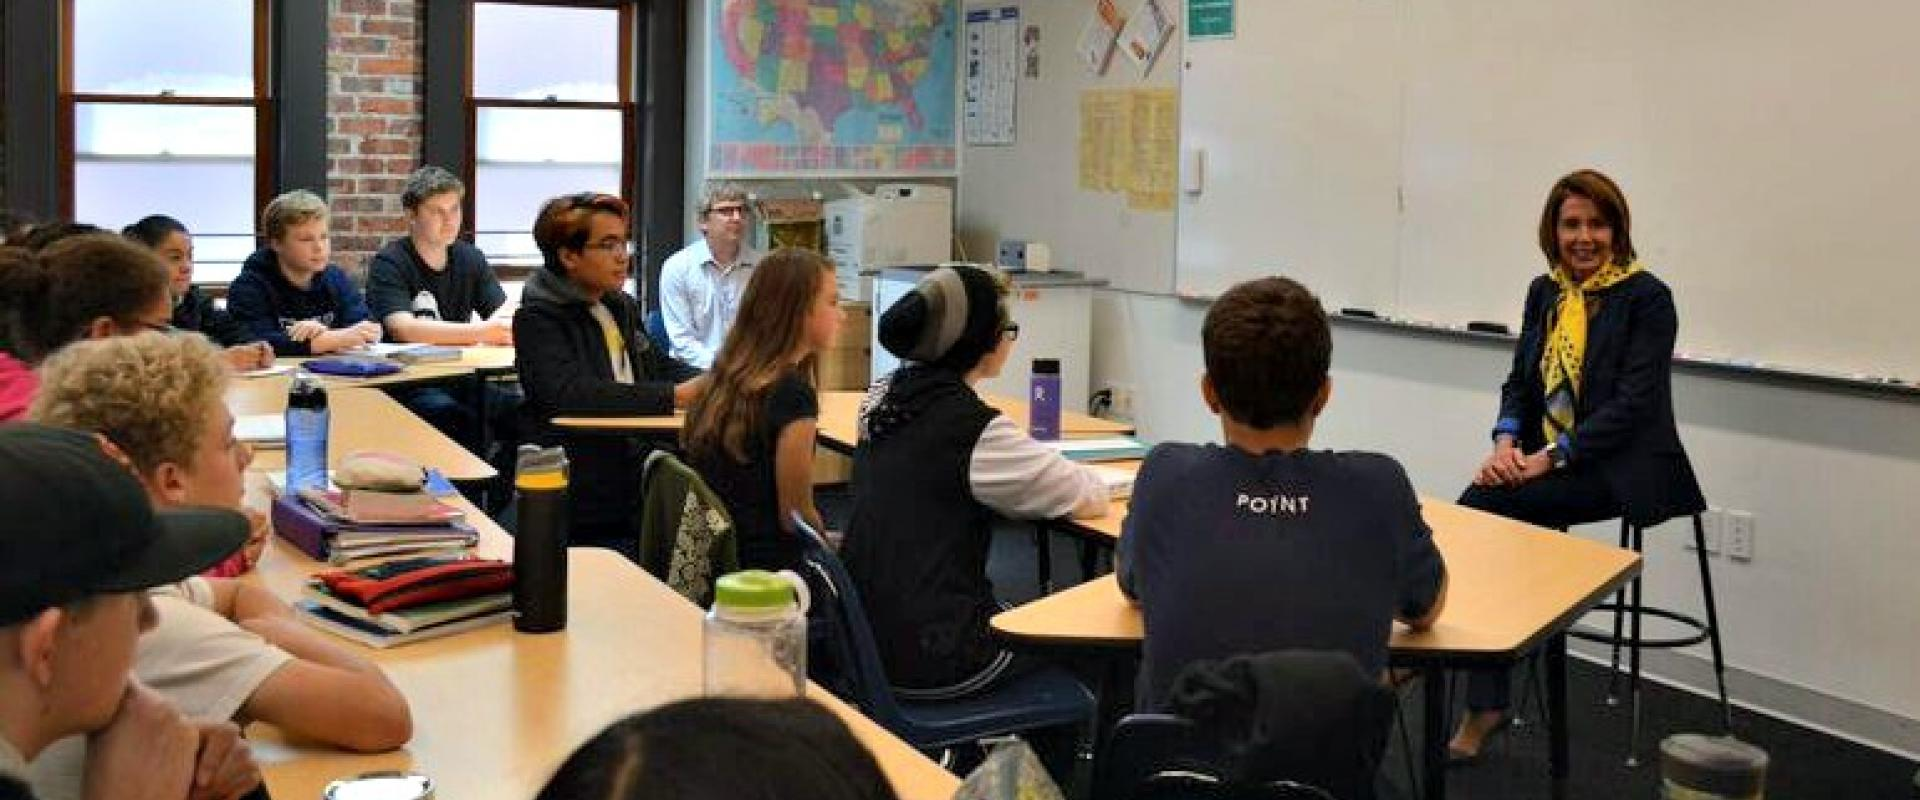 Congresswoman Pelosi discusses gun violence prevention, criminal justice reform, and promoting democracy with 8th grade students from Children's Day School in the Mission, where she was honored with the Congresswoman Nancy Pelosi Classroom.